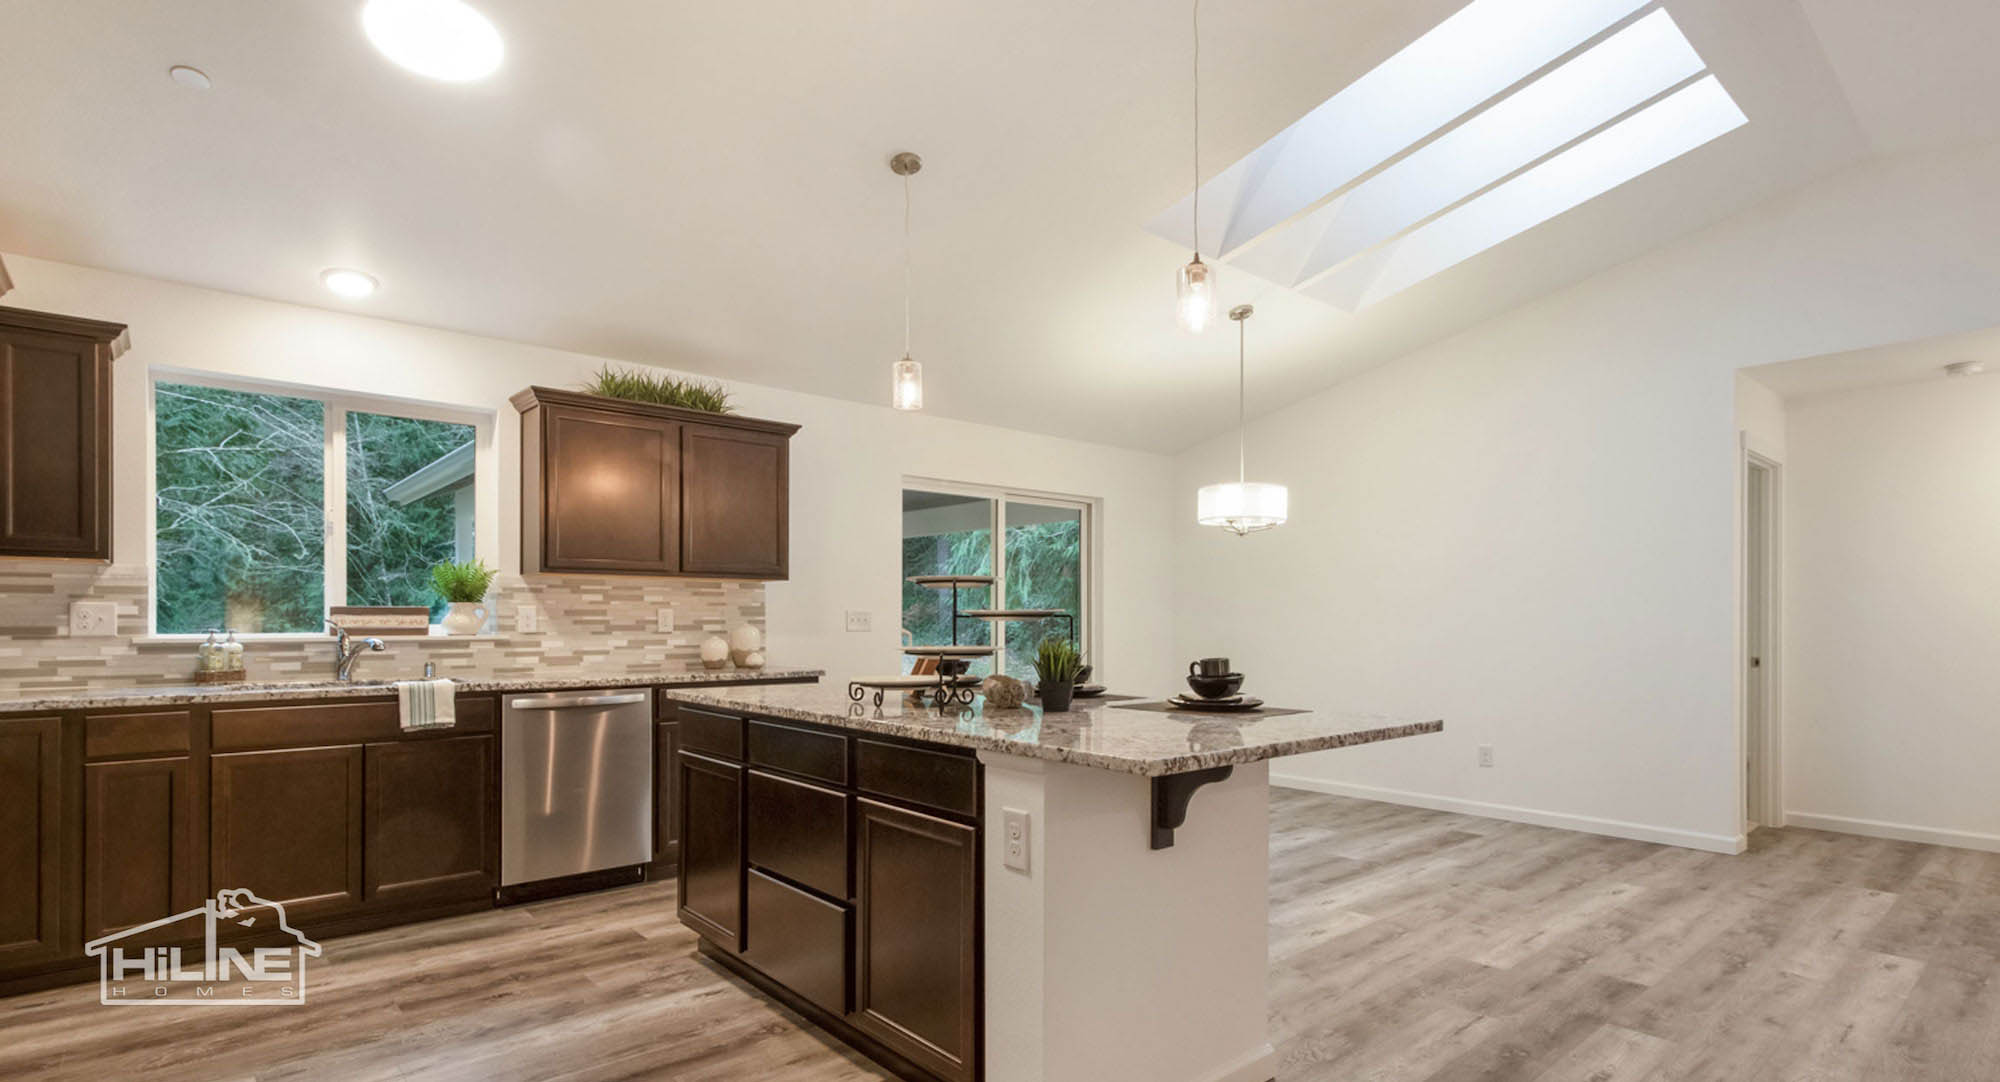 HiLine Home Plan 1491 Kitchen to Dining